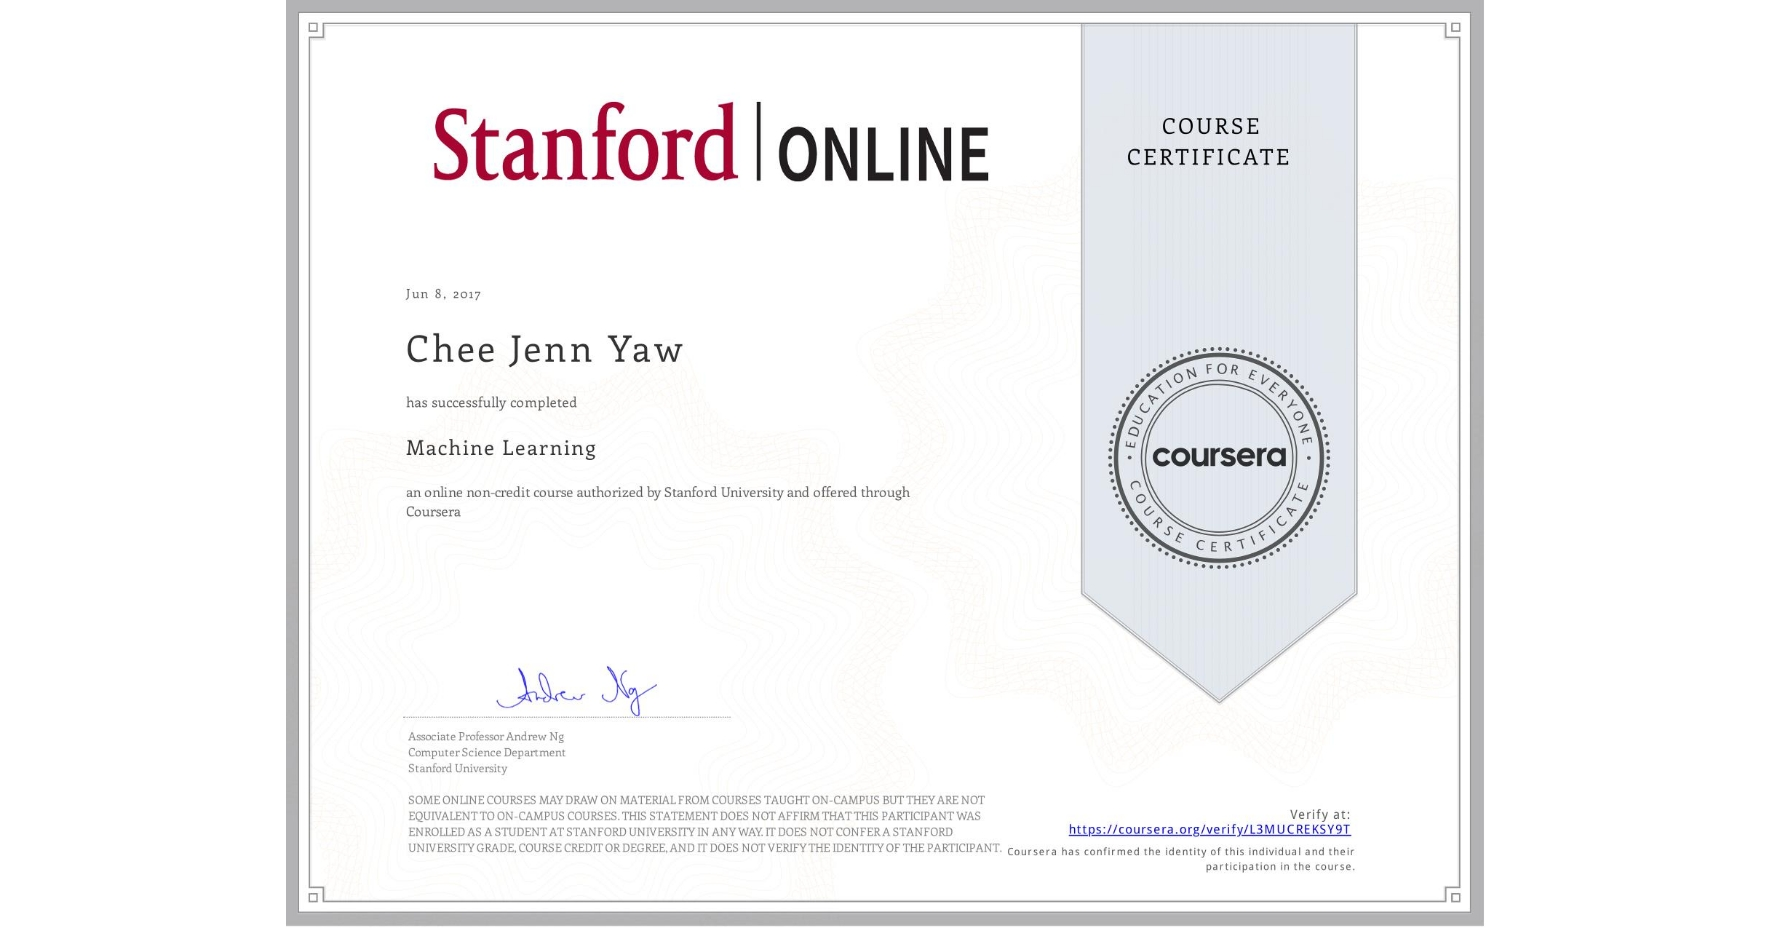 View certificate for Chee Jenn Yaw, Machine Learning, an online non-credit course authorized by Stanford University and offered through Coursera